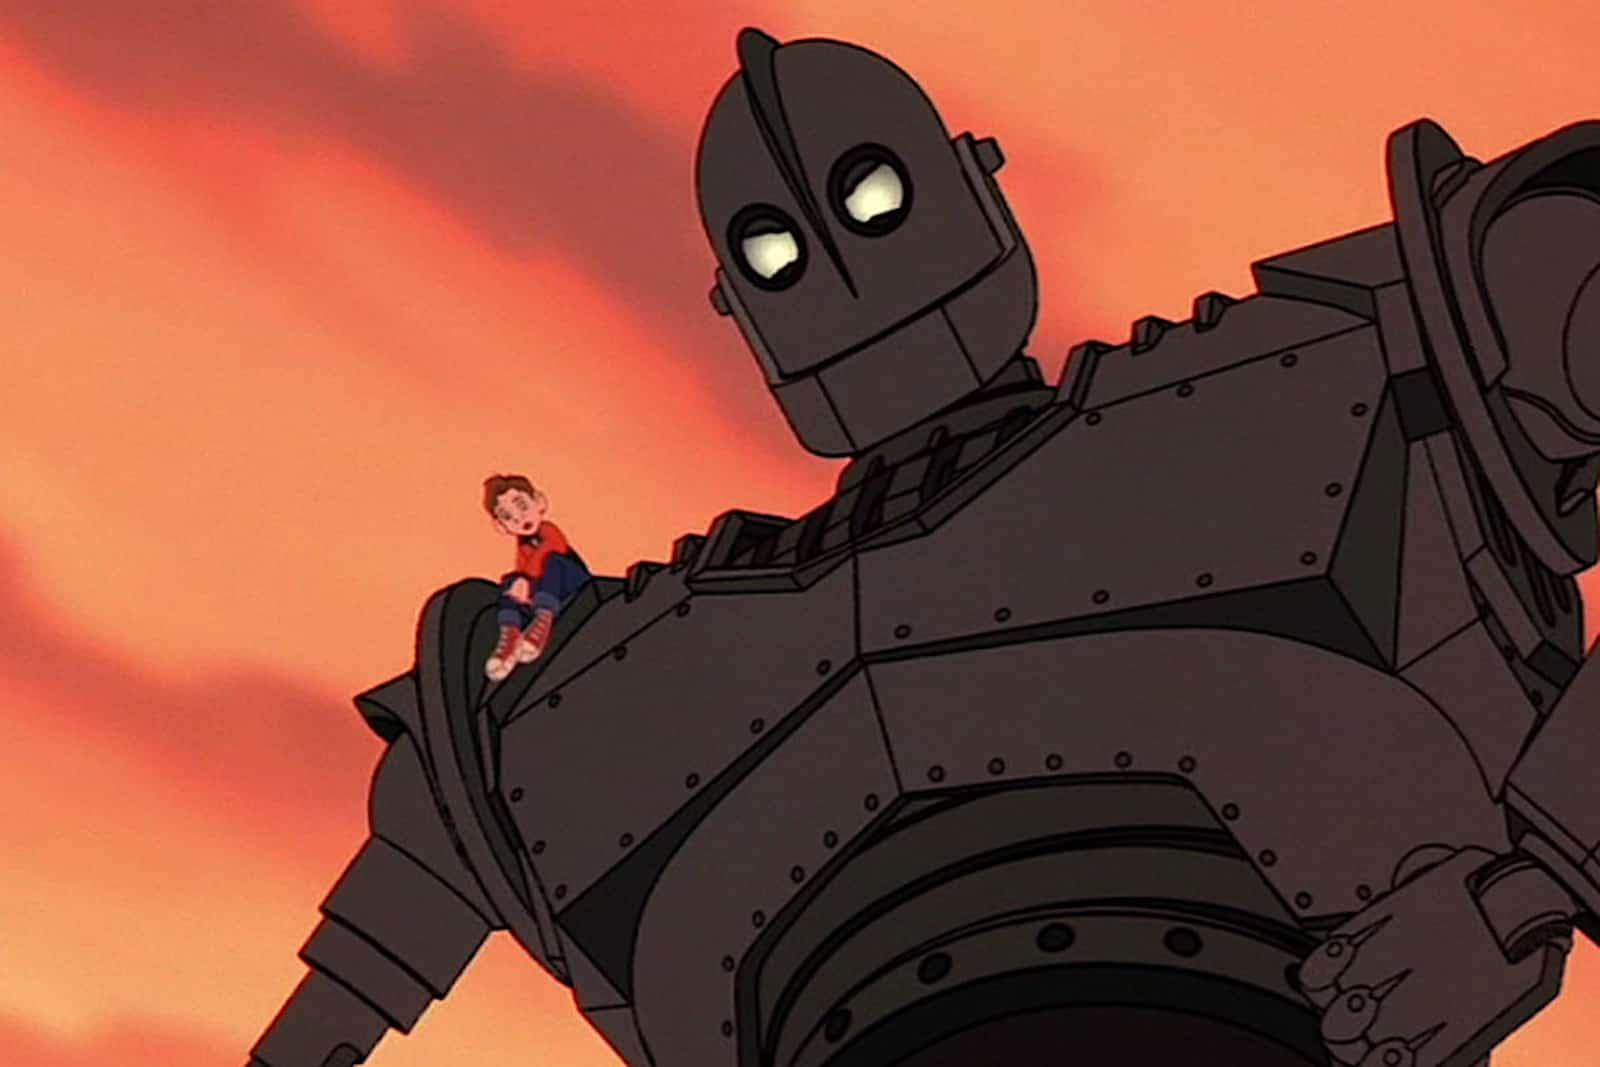 Internal and External Conflict - The Iron Giant